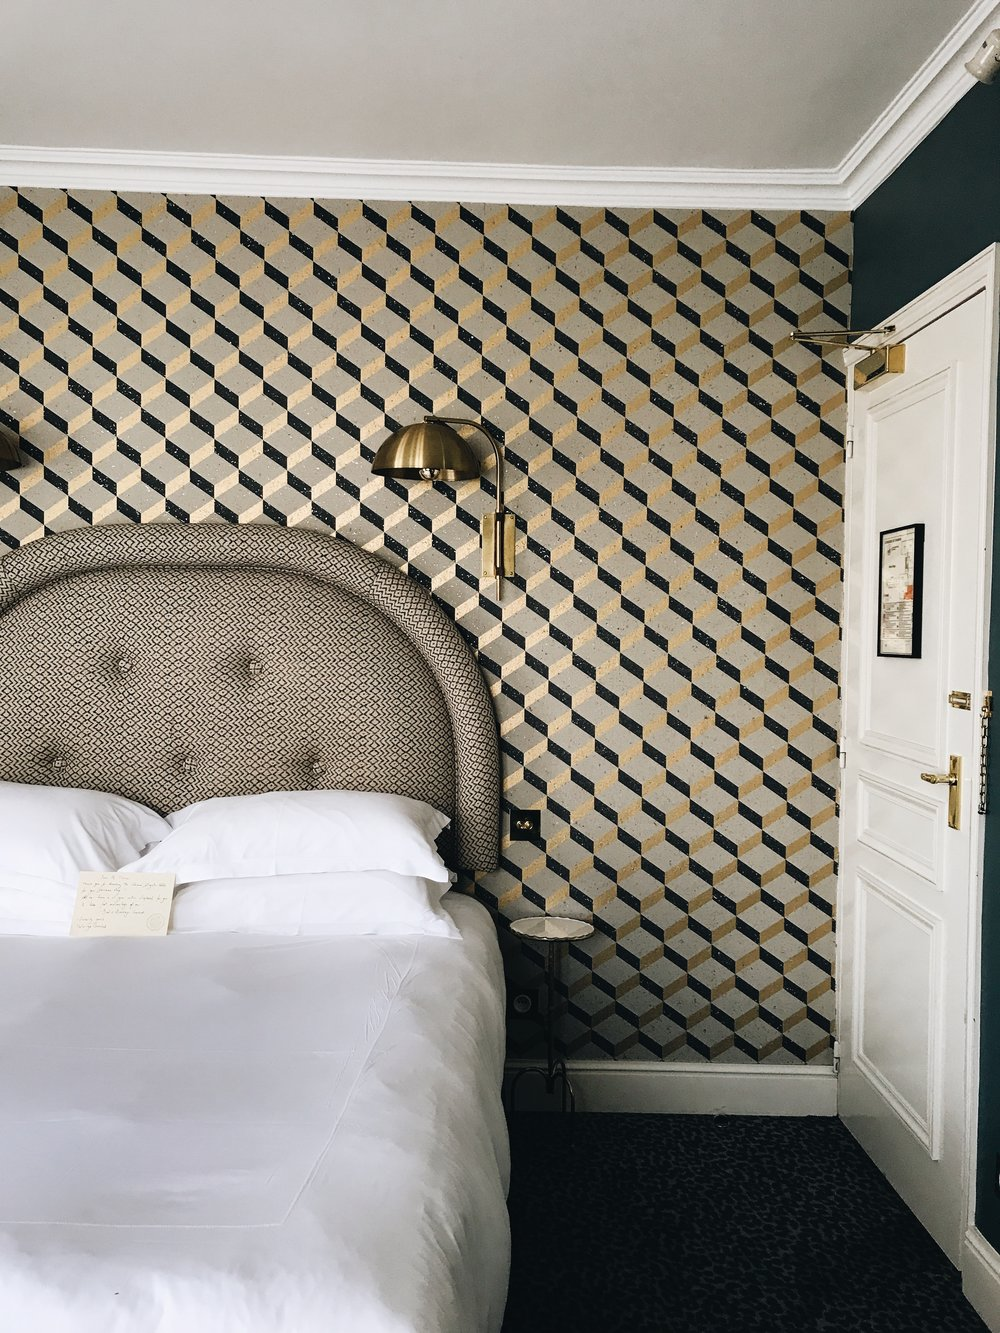 Grand Pigalle Hotel Room